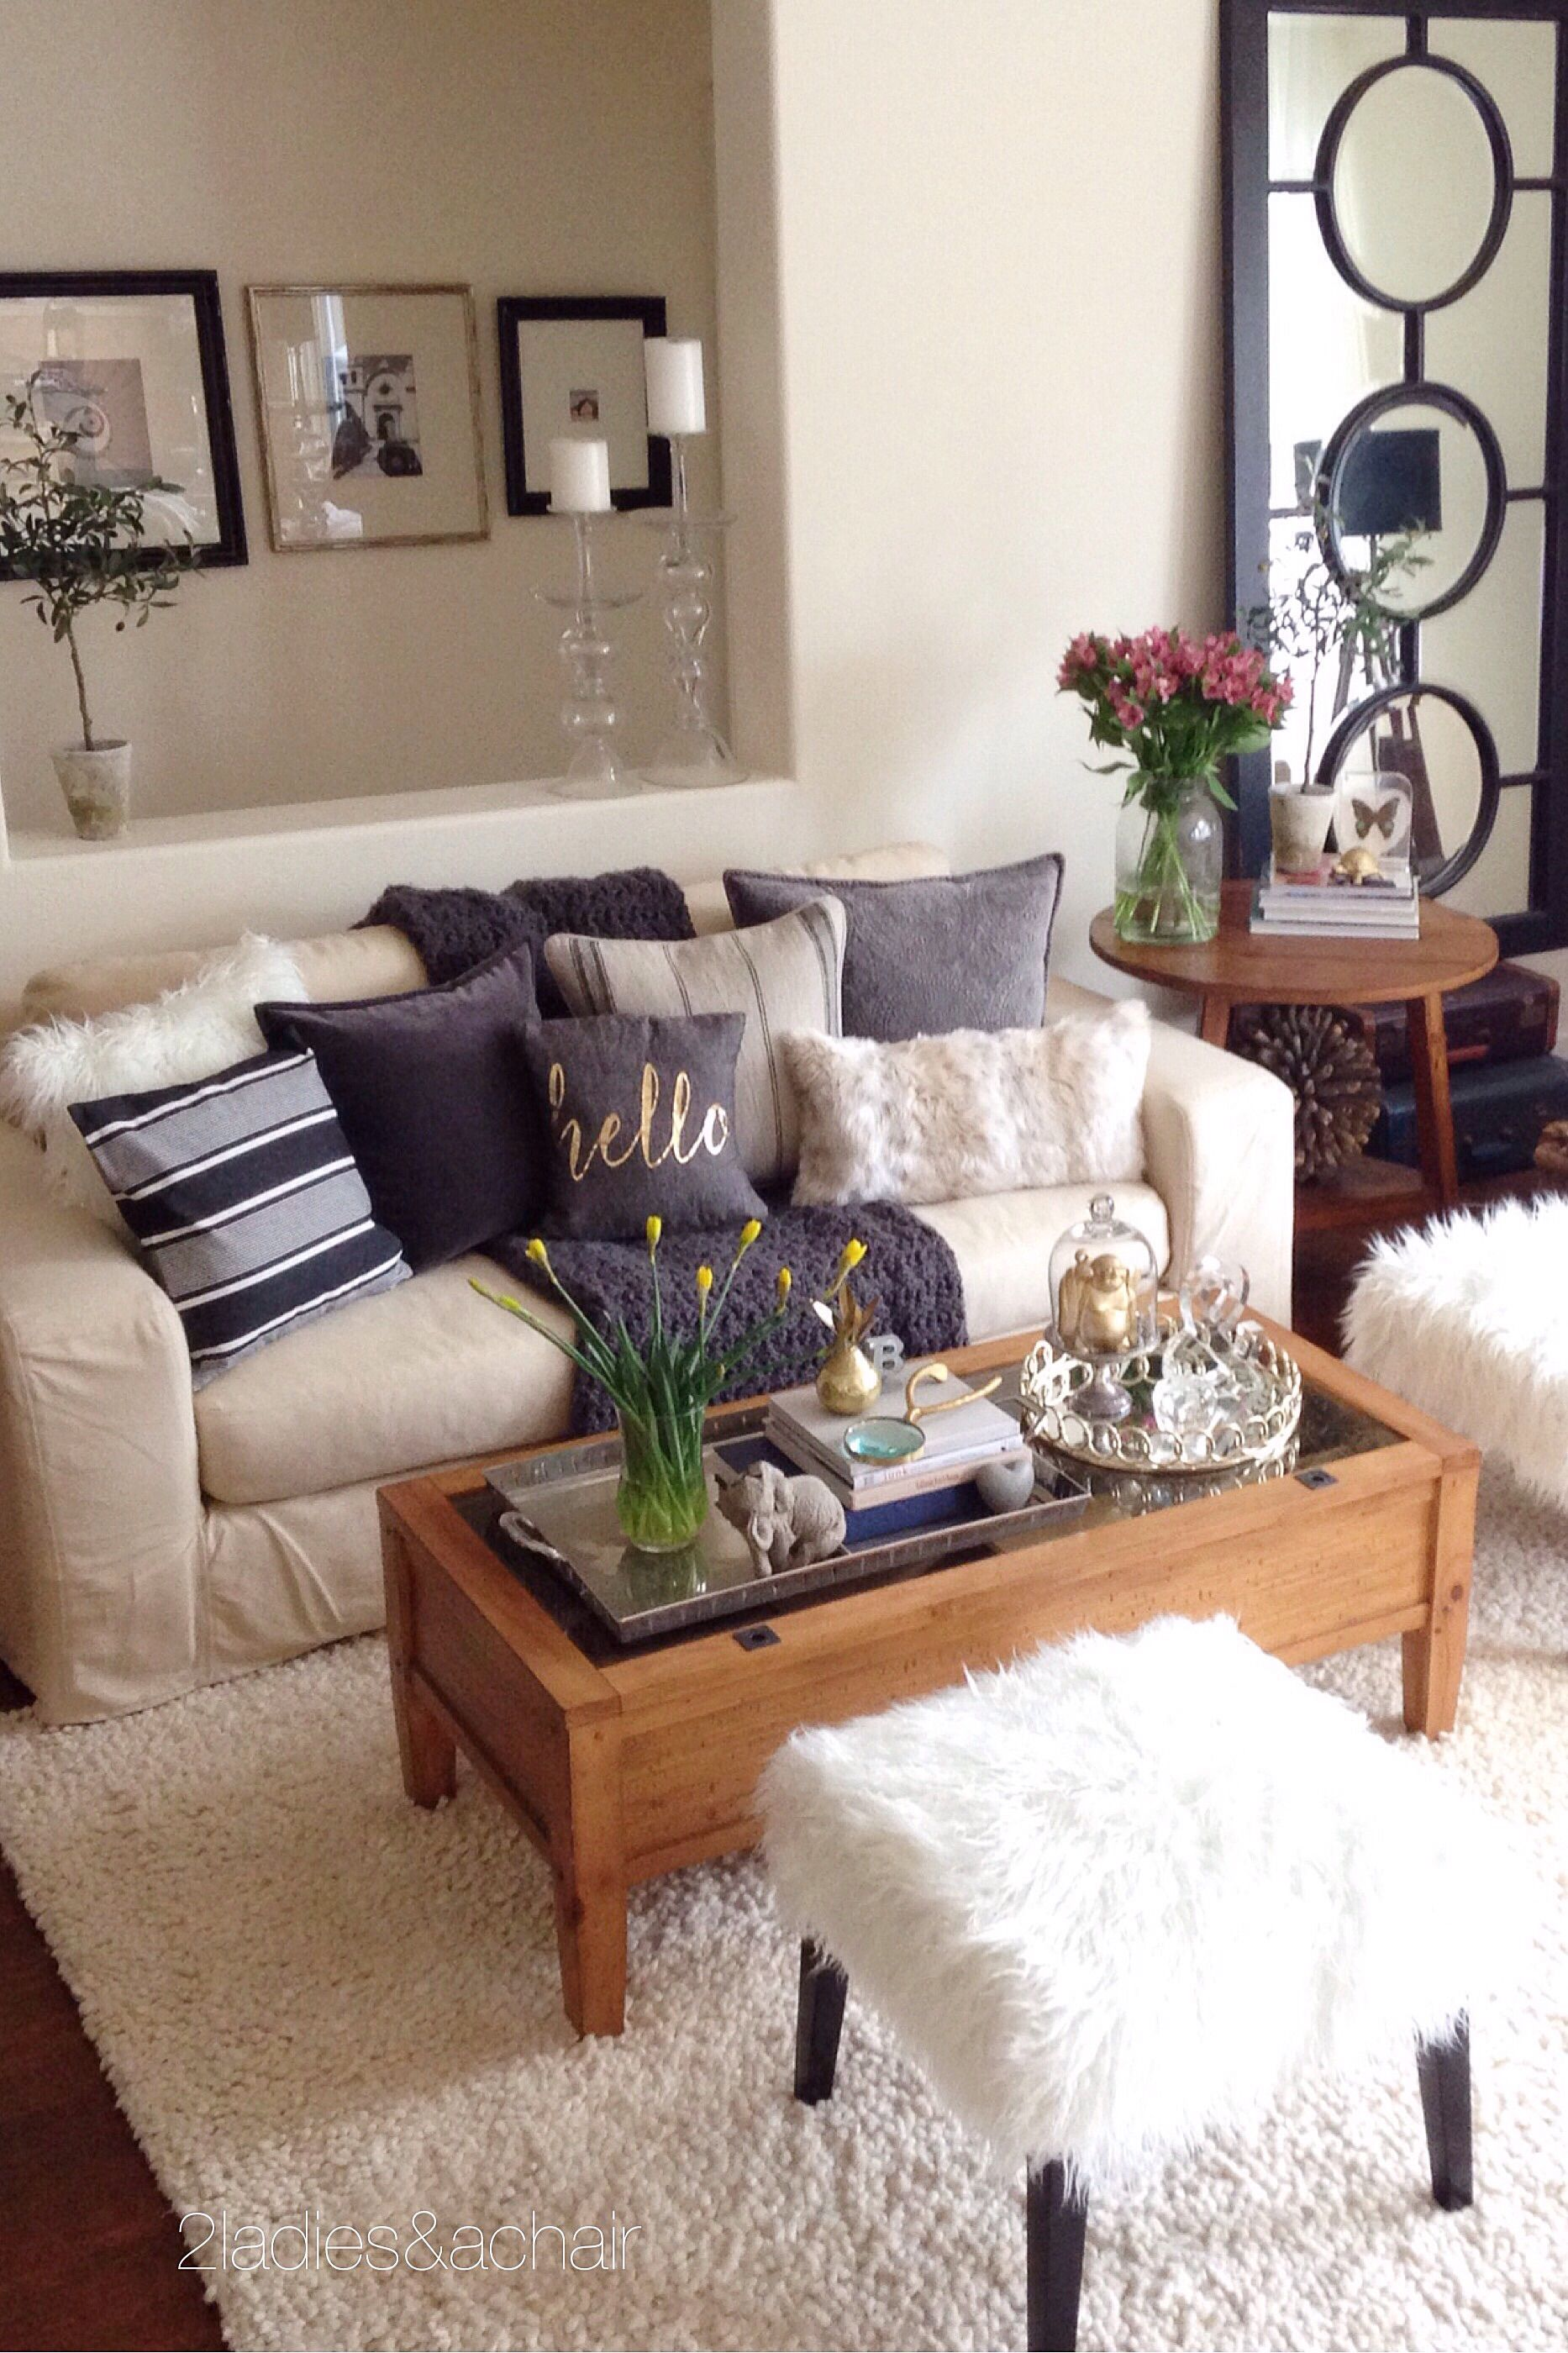 Jan 7 How To Decorate For Winter | ❊Home Decor❊ | First ...